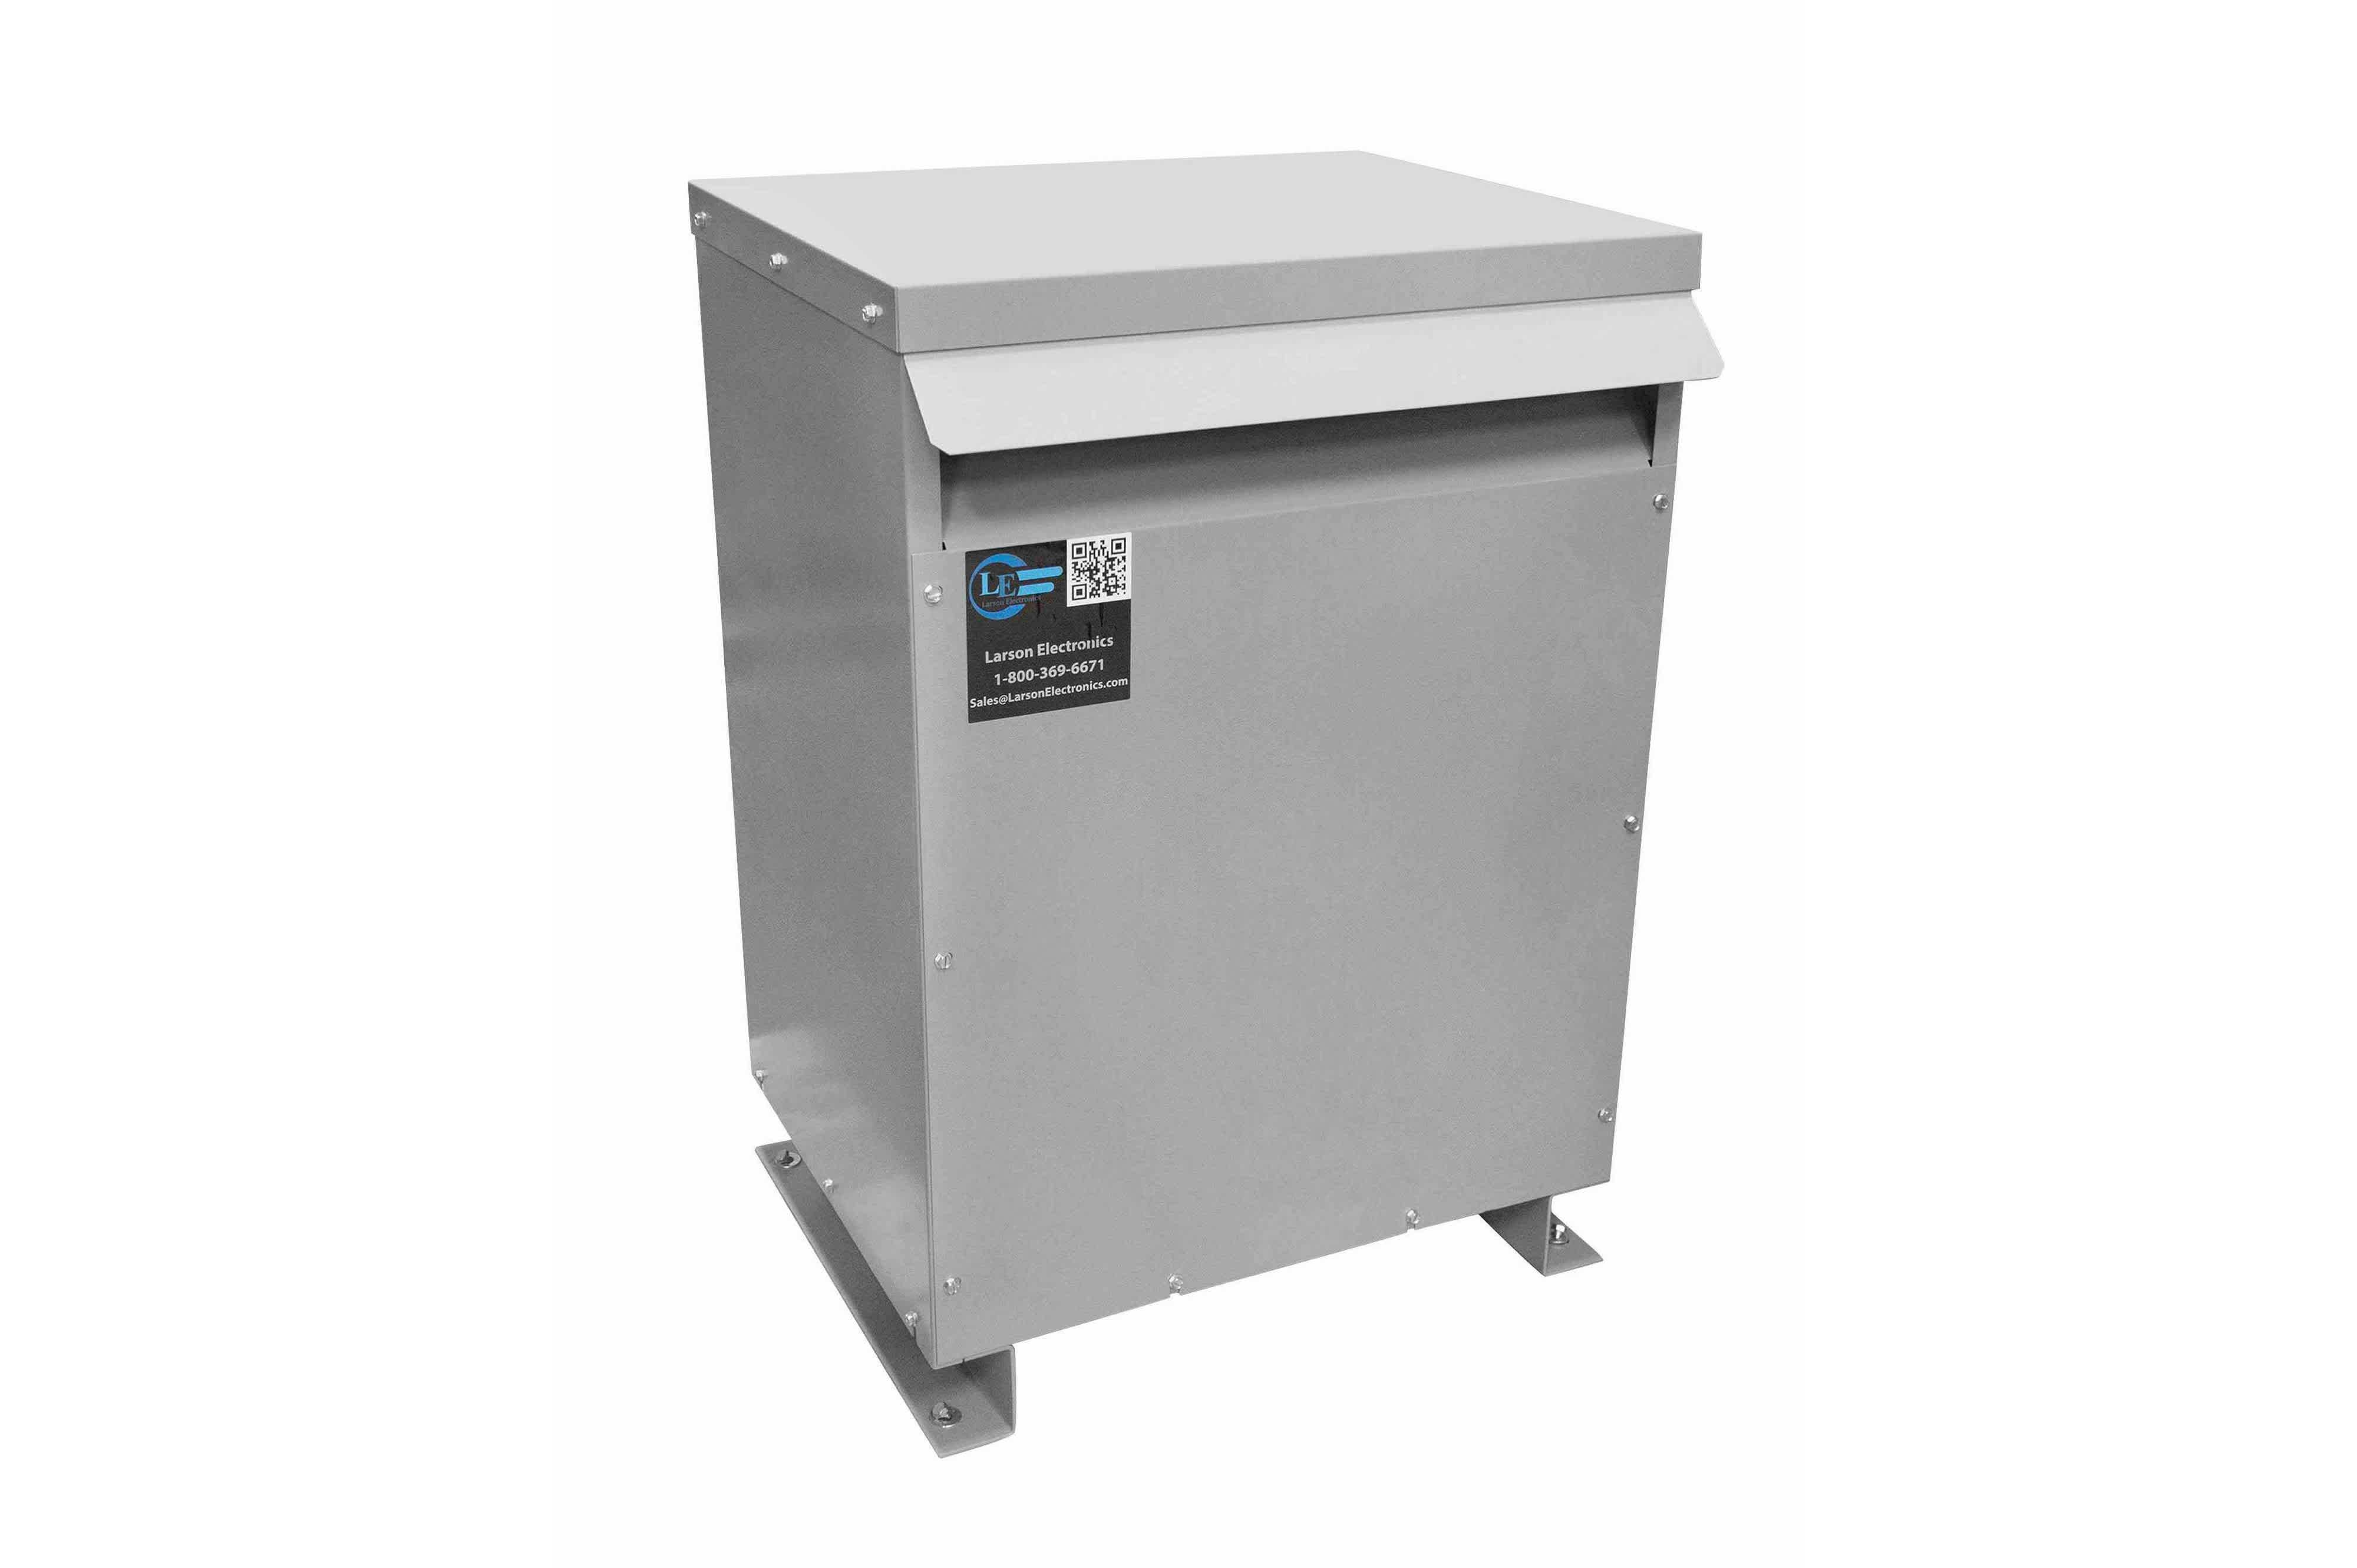 90 kVA 3PH Isolation Transformer, 380V Wye Primary, 208V Delta Secondary, N3R, Ventilated, 60 Hz